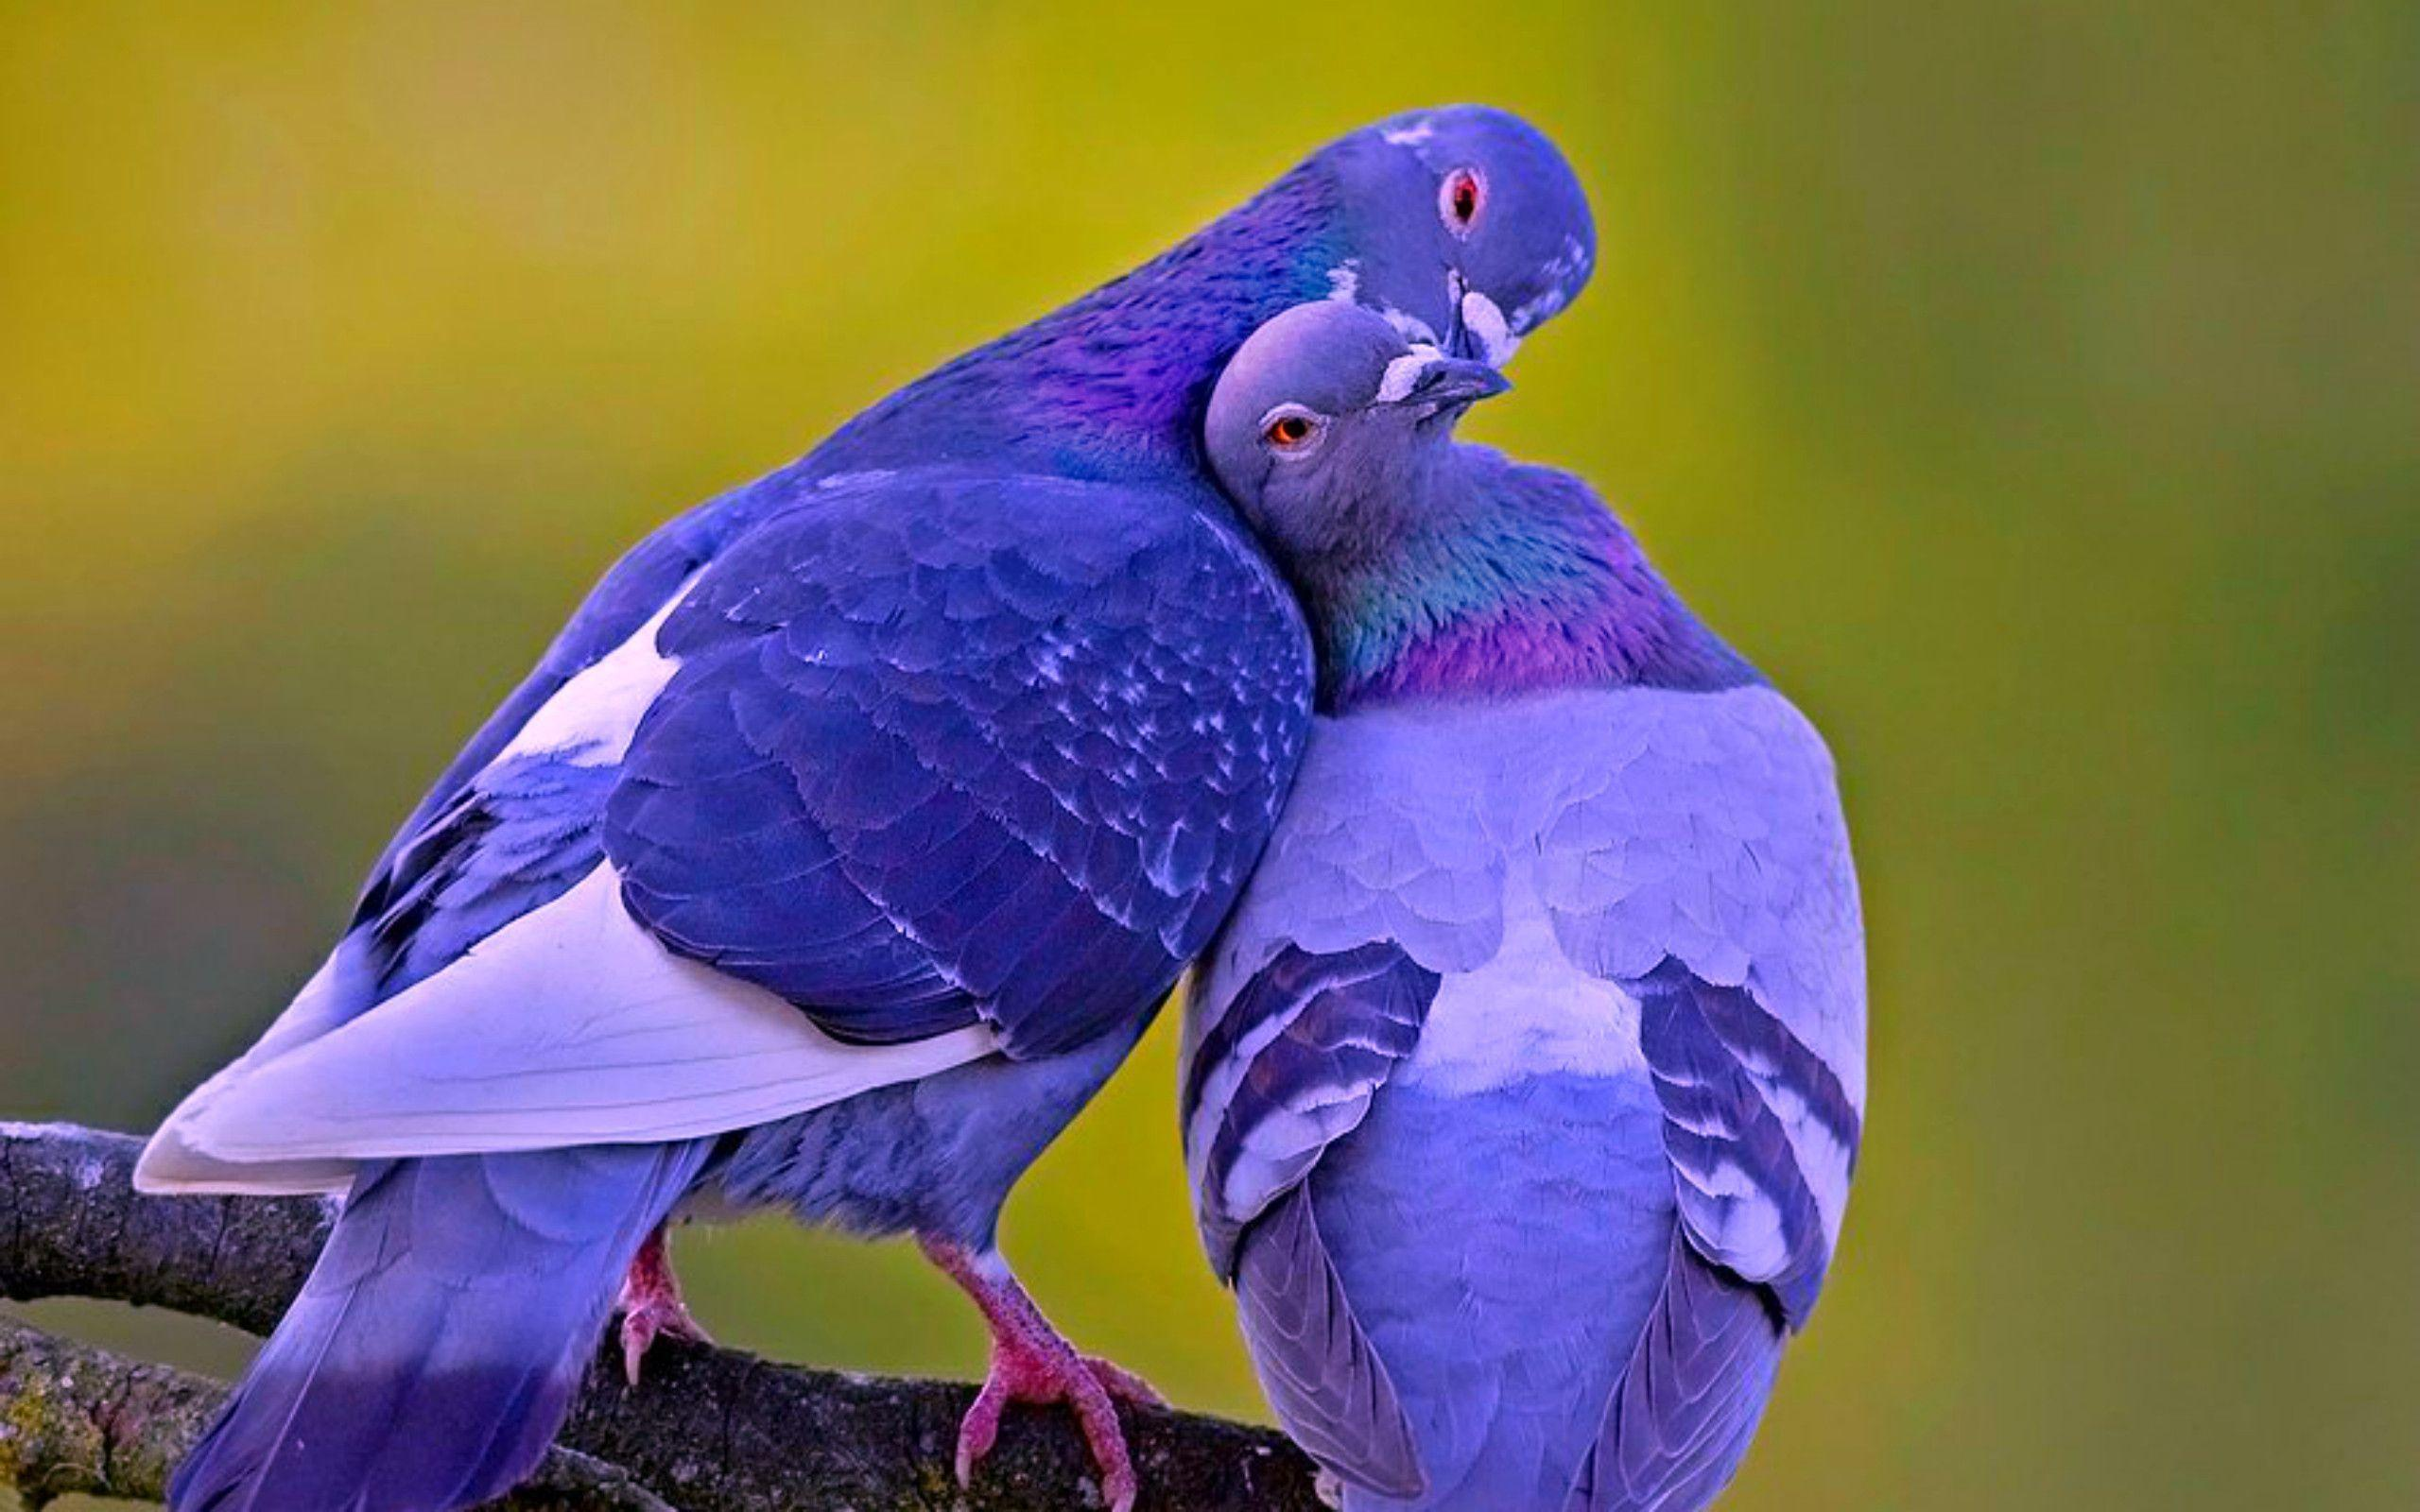 Love Birds Hd Wallpapers And Images Free Download: Lovely Birds Wallpapers